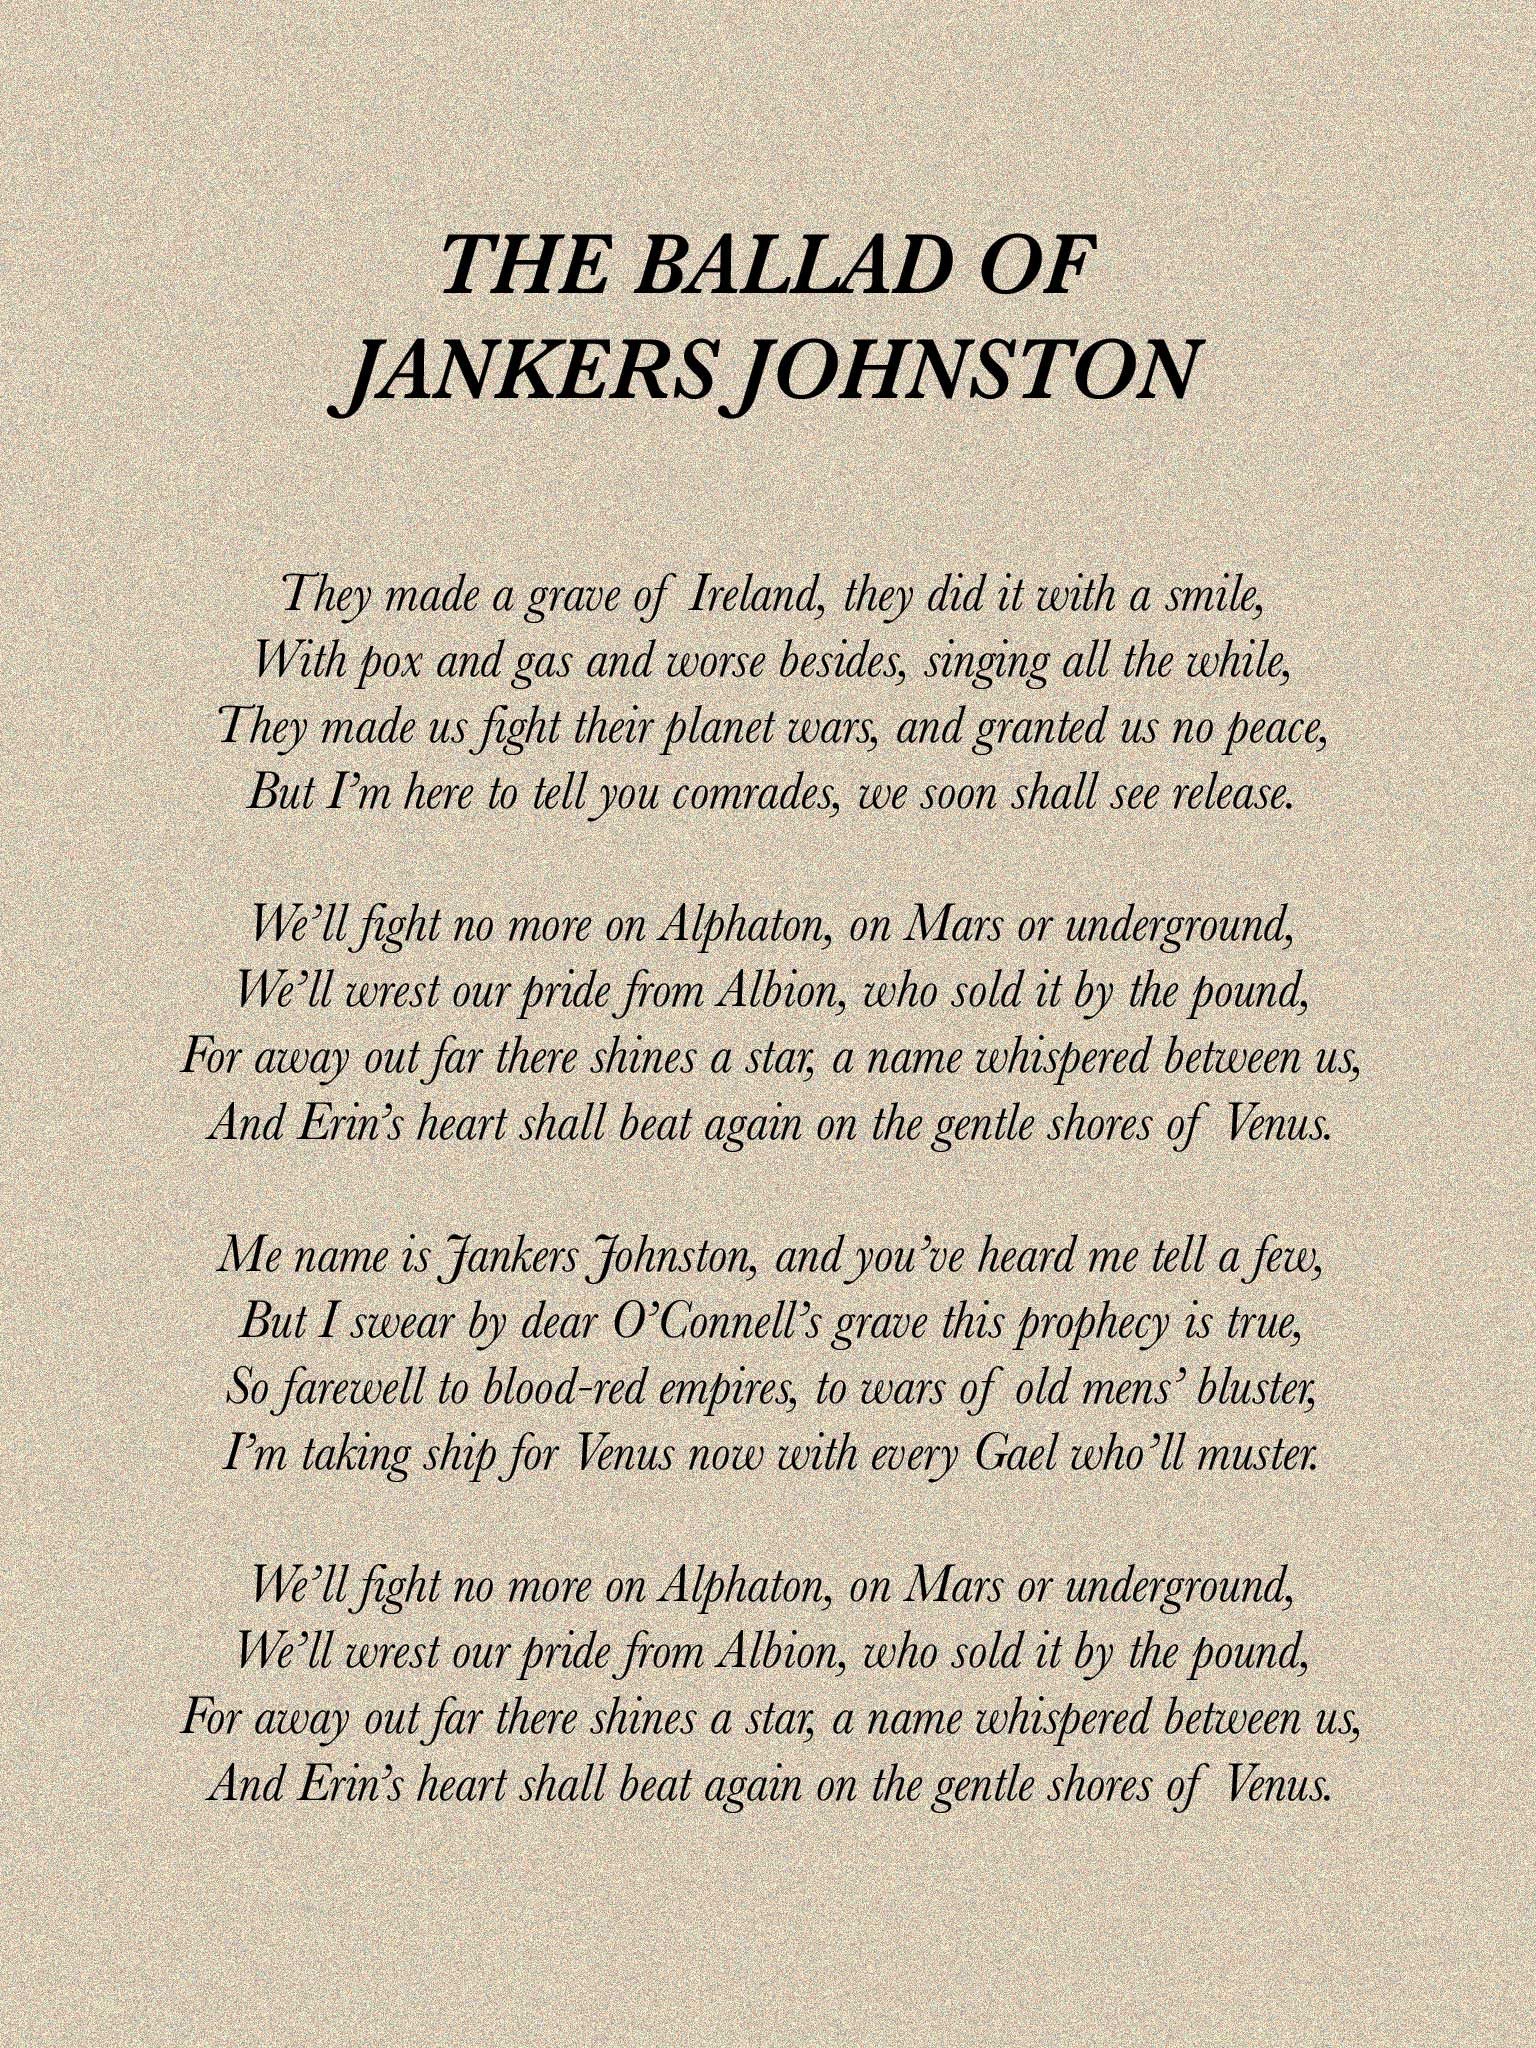 """JANKERS JOHNSTON"" A ballad overheard in the penal colonies of the asteroid belt.  They made a grave of Ireland, they did it with a smile, With pox and gas and worse besides, singing all the while, They made us fight their planet wars, and granted us no peace, But I'm here to tell you comrades, we soon shall see release.  We'll fight no more on Alphaton, on Mars or underground, We'll wrest our pride from Albion, who sold it by the pound, For away out far there shines a star, a name whispered between us, And Erin's heart shall beat again on the gentle shores of Venus.  Me name is Jankers Johnston, and you've heard me tell a few, But I swear by dear O'Connell's grave this prophecy is true, So farewell to blood-red empires, to wars of old mens' bluster, I'm taking ship for Venus now with every Gael who'll muster.  We'll fight no more on Alphaton, on Mars or underground, We'll wrest our pride from Albion, who sold it by the pound, For away out far there shines a star, a name whispered between us, And Erin's heart shall beat again on the gentle shores of Venus."